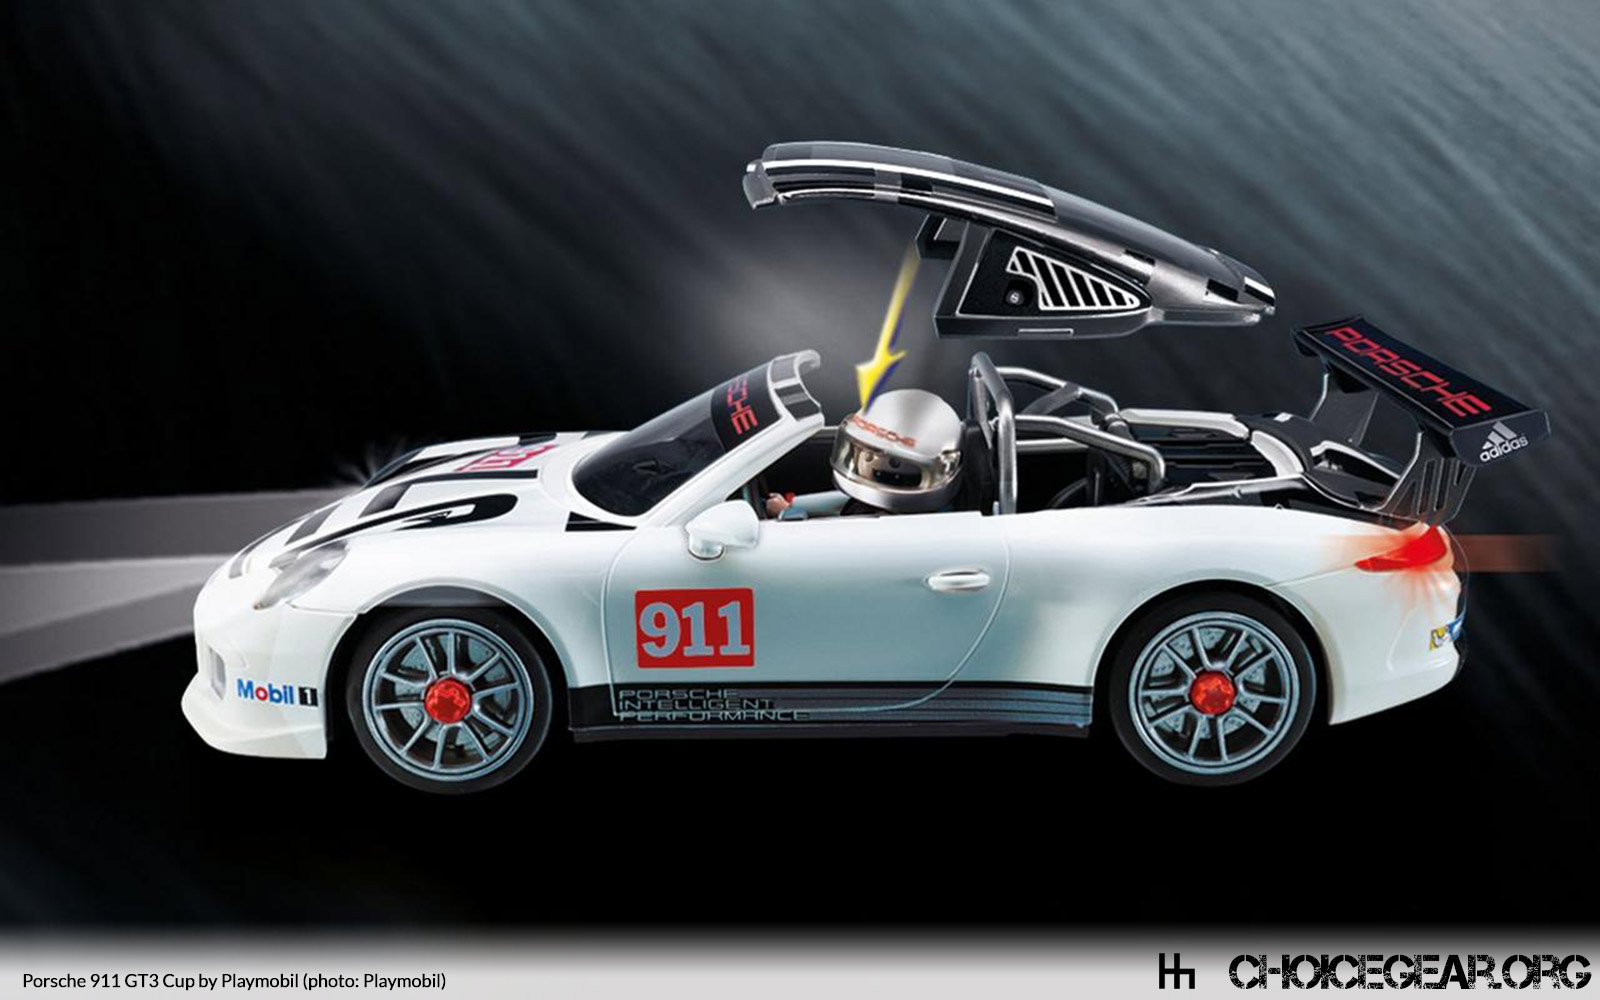 playmobil porsche 911 gt3 cup choice gear. Black Bedroom Furniture Sets. Home Design Ideas